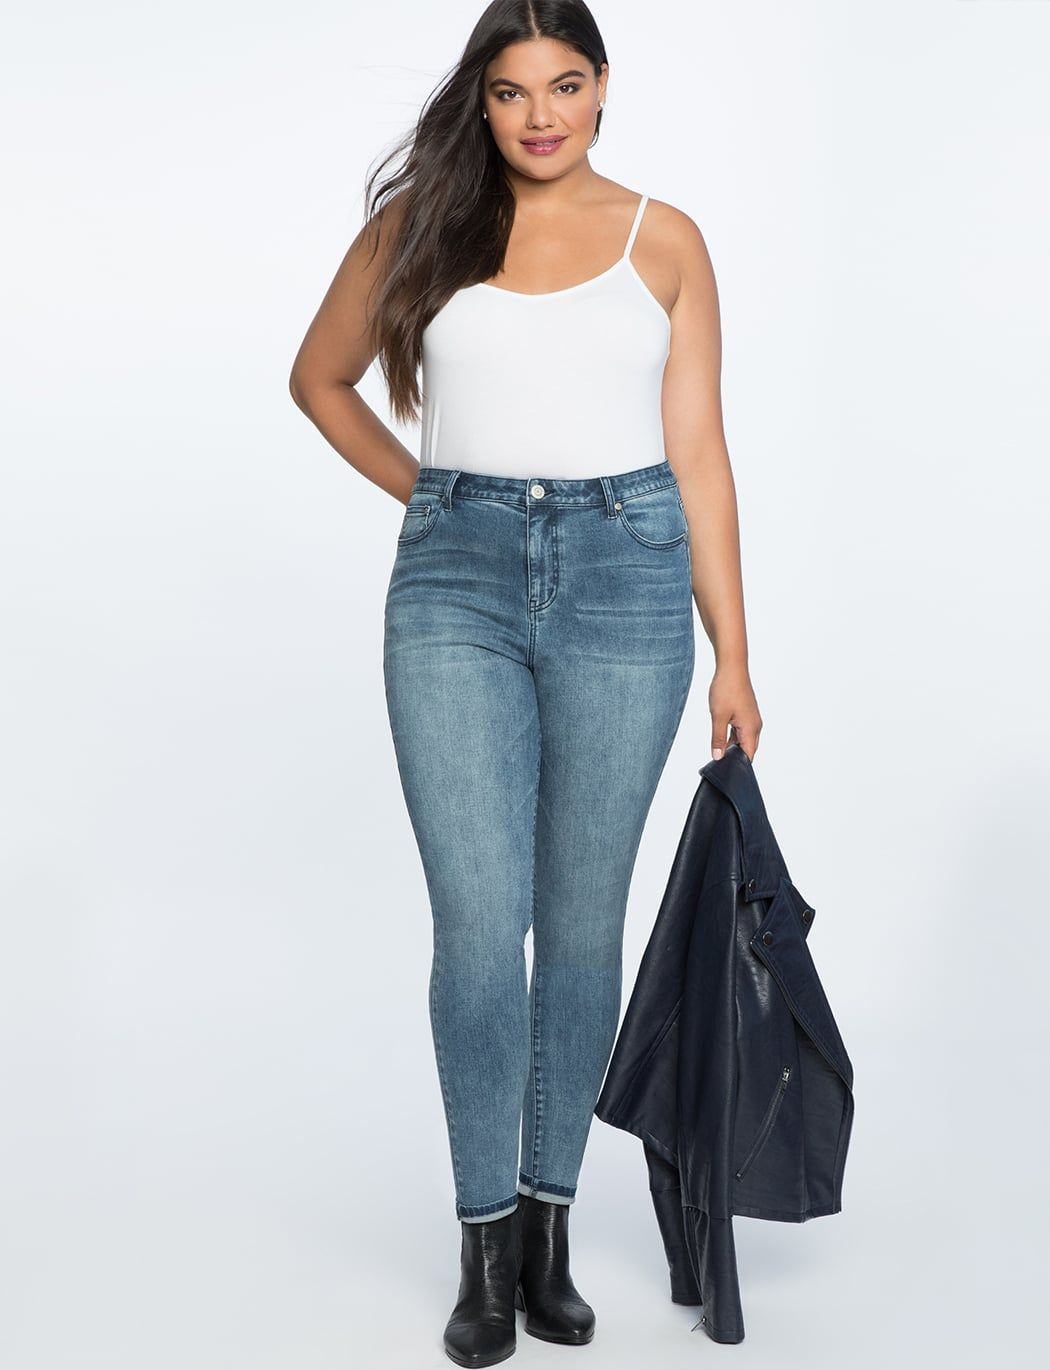 4f265d48224f3 The Best Jeans For Every Body Shape